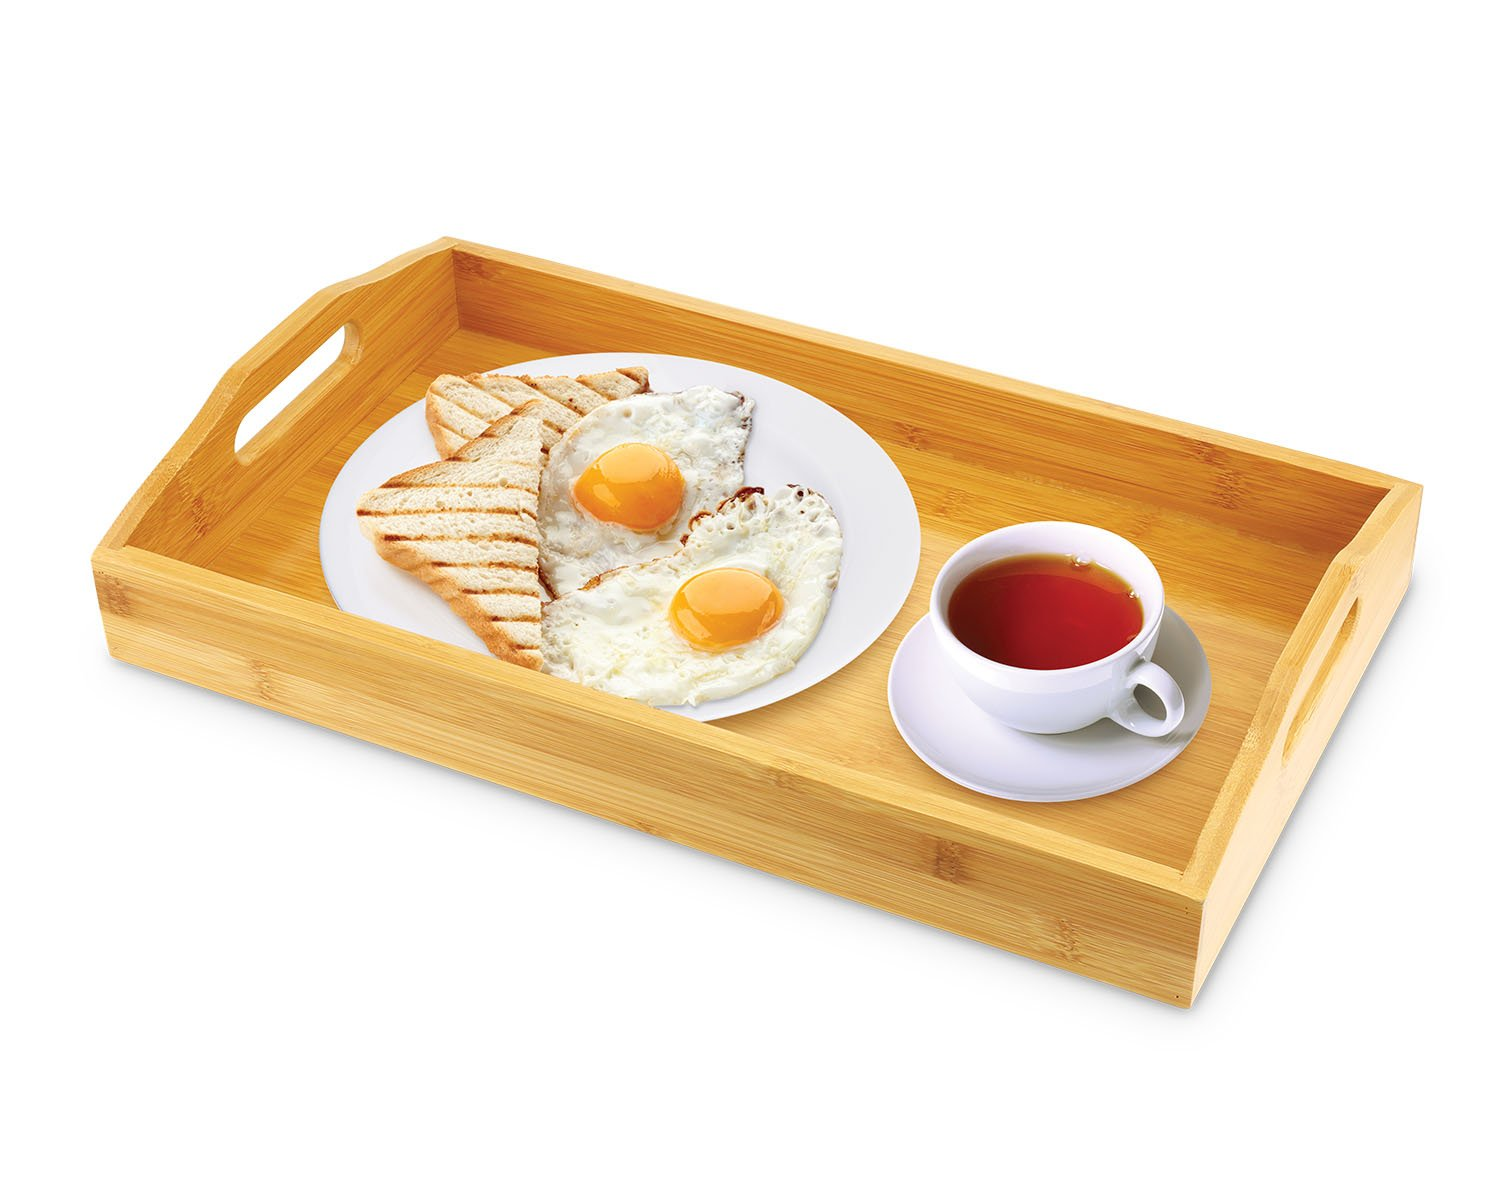 KOVOT Bamboo Serving Tray - Breakfast Butler Tray With Handles: 17''L x 10''W x 3''H